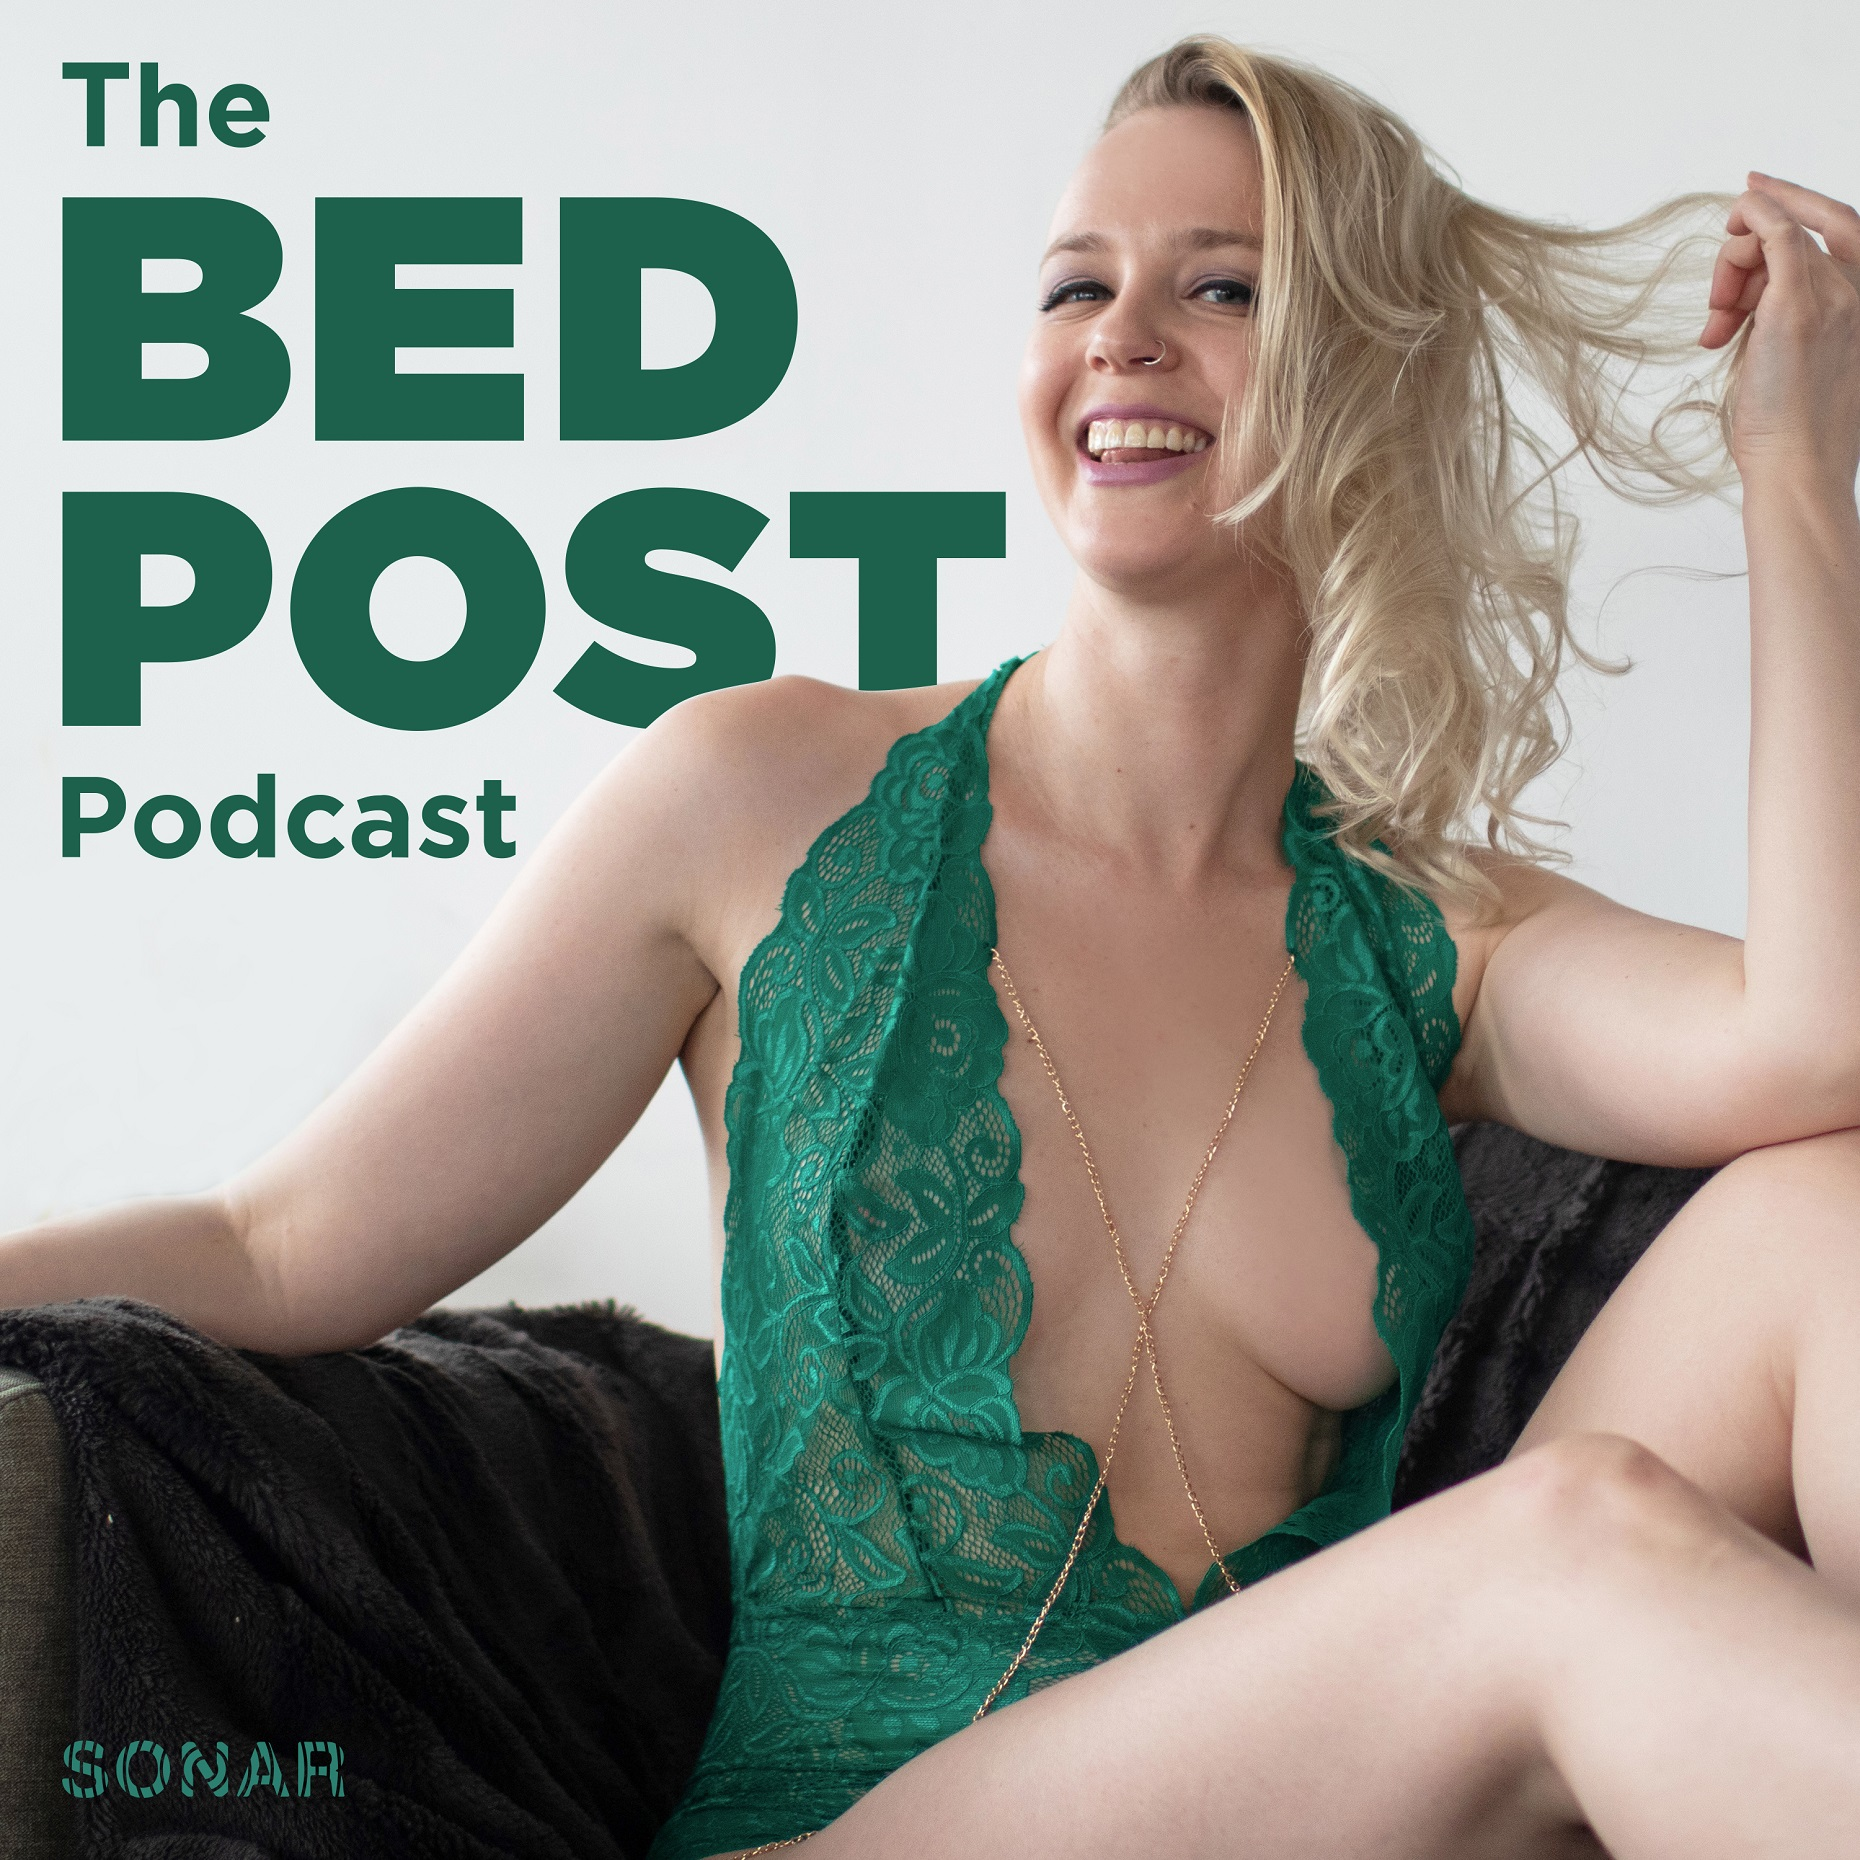 The Bed Post Podcast